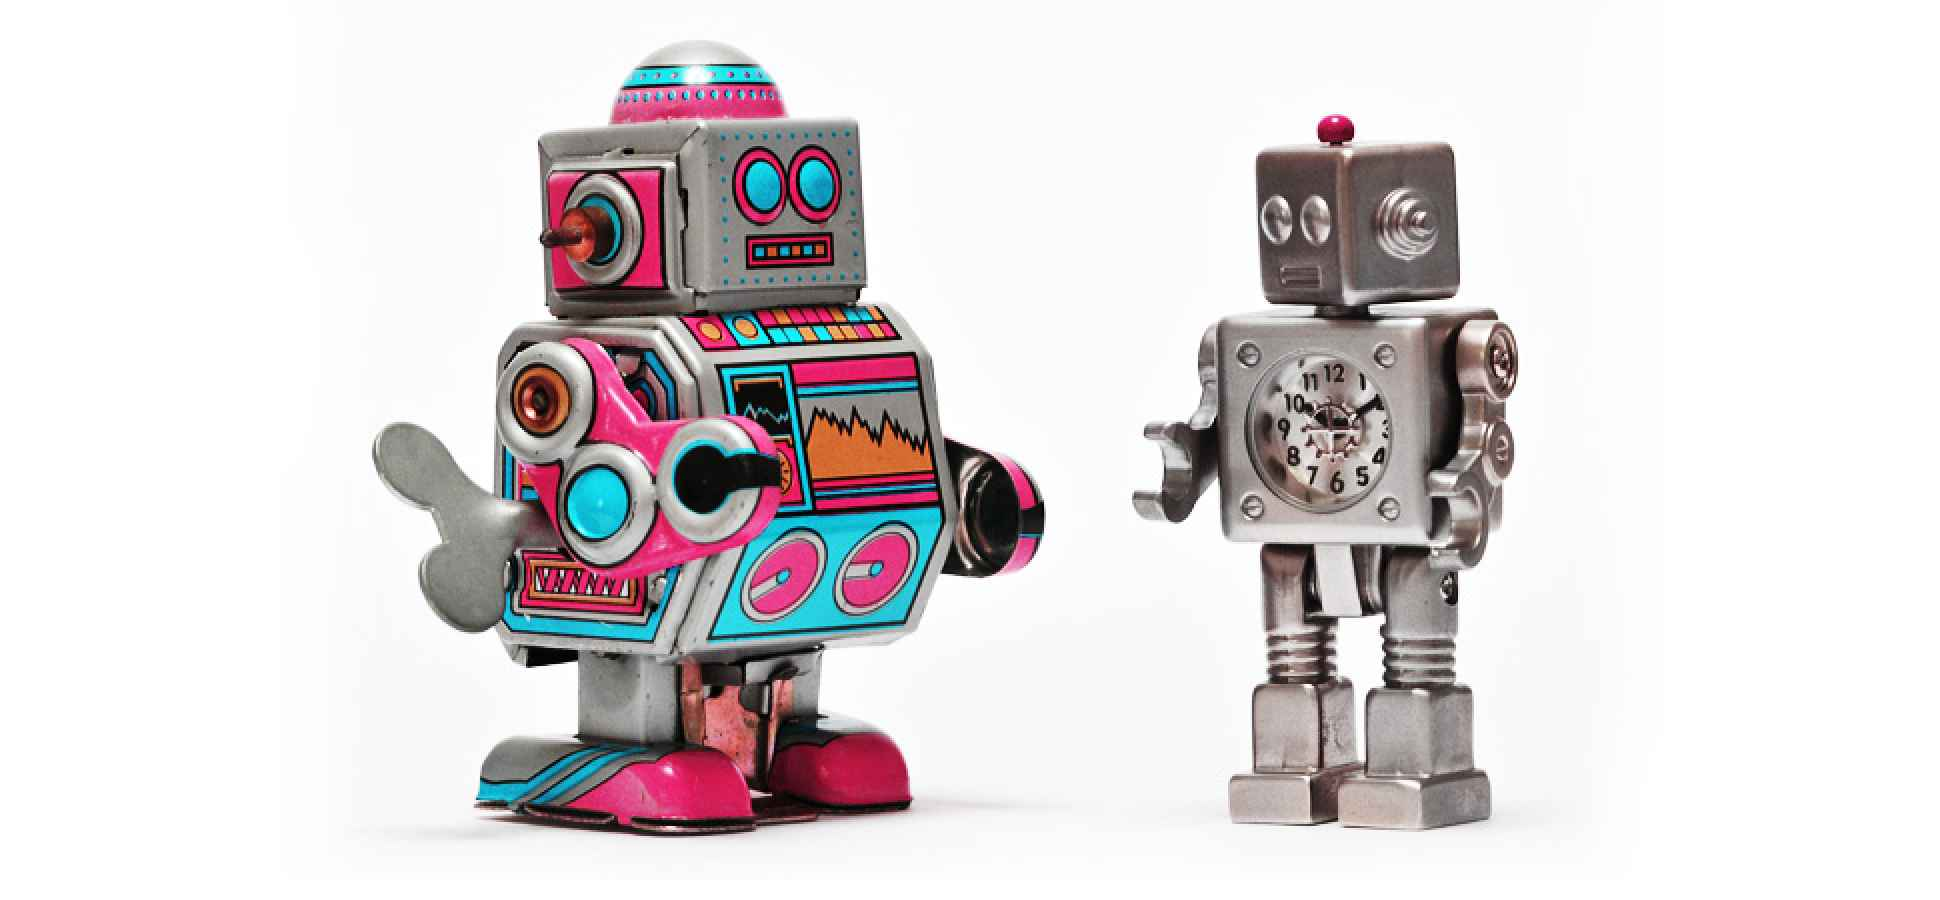 Has Technology Turned Your Company Into a Marketing Robot?